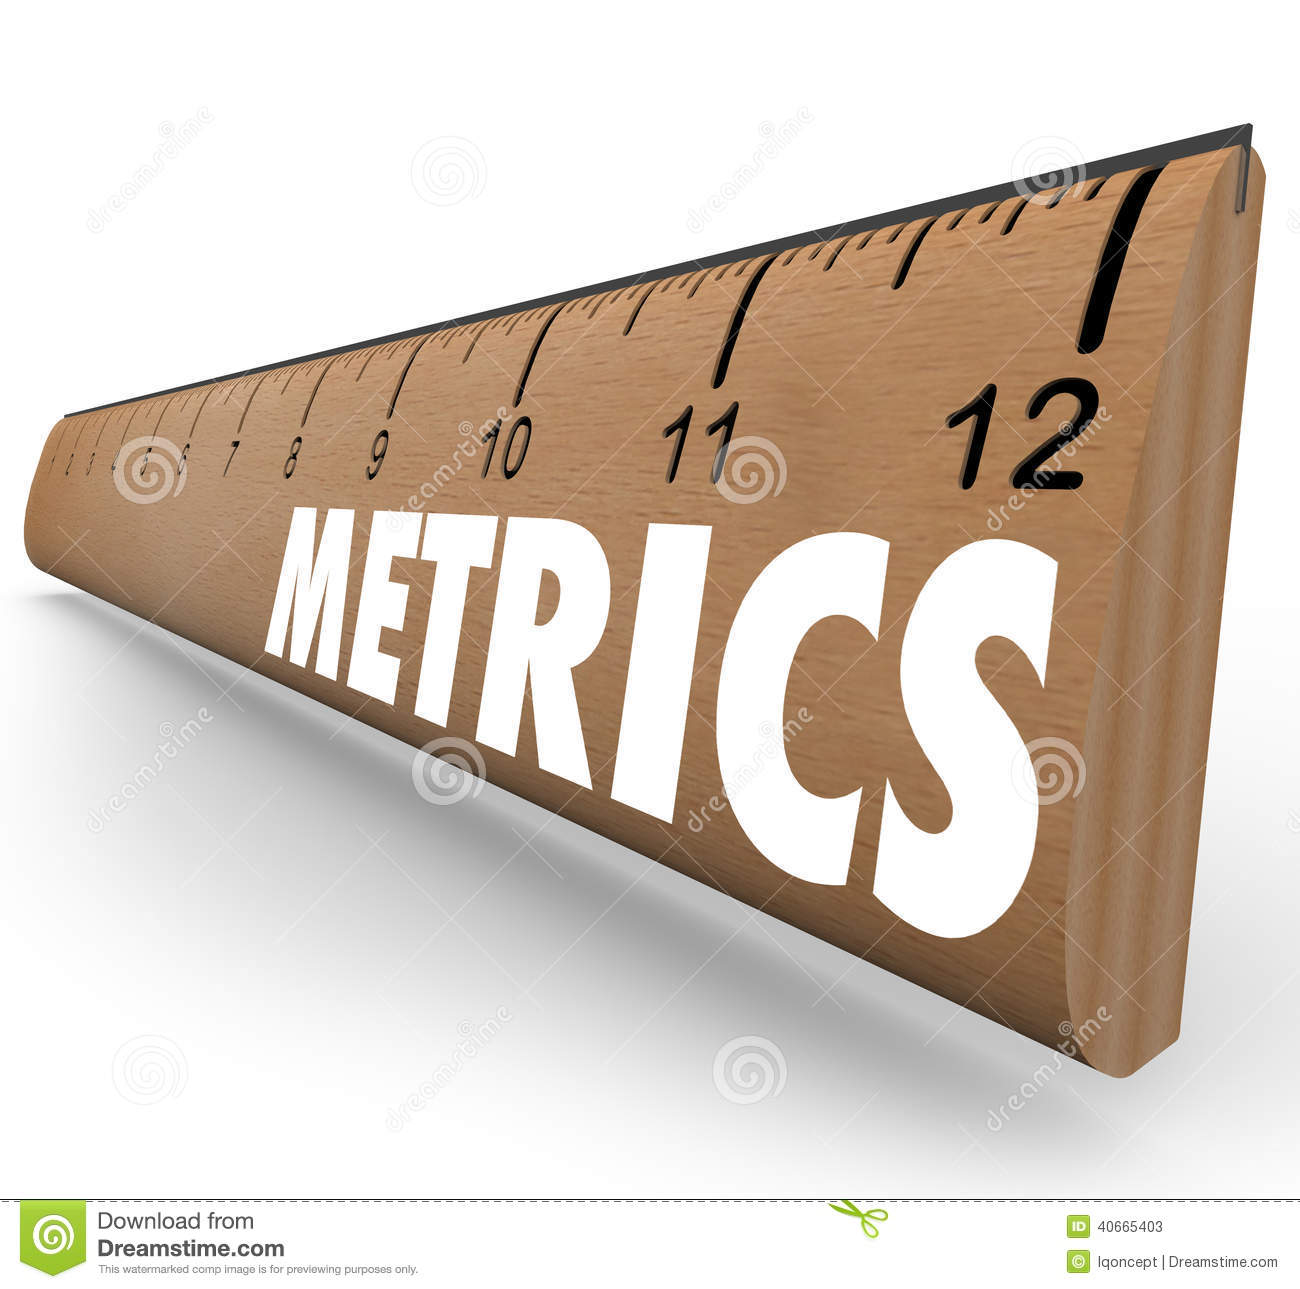 Metric measurement clipart.